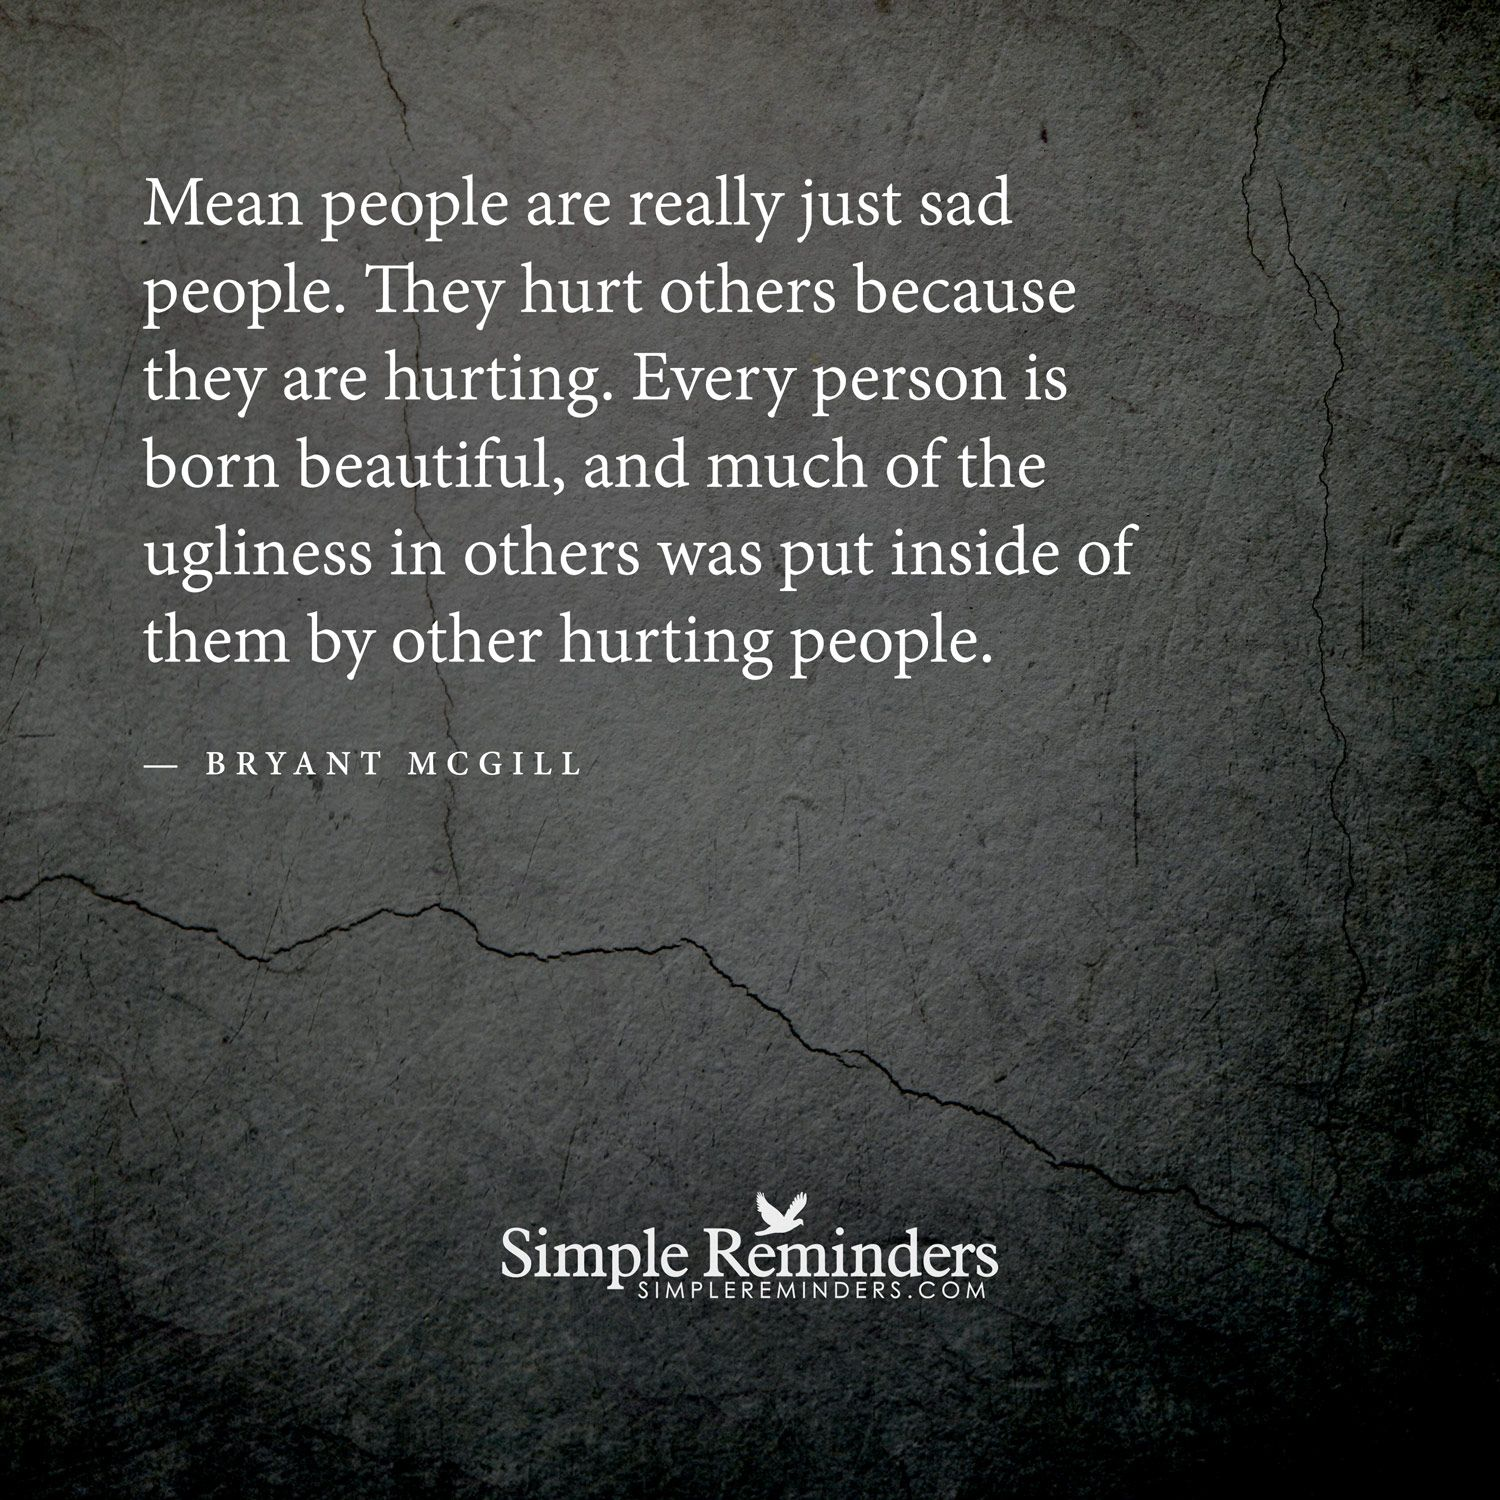 Quotes About Mean People: Mean People Are Really Just Sad People. They Hurt Others